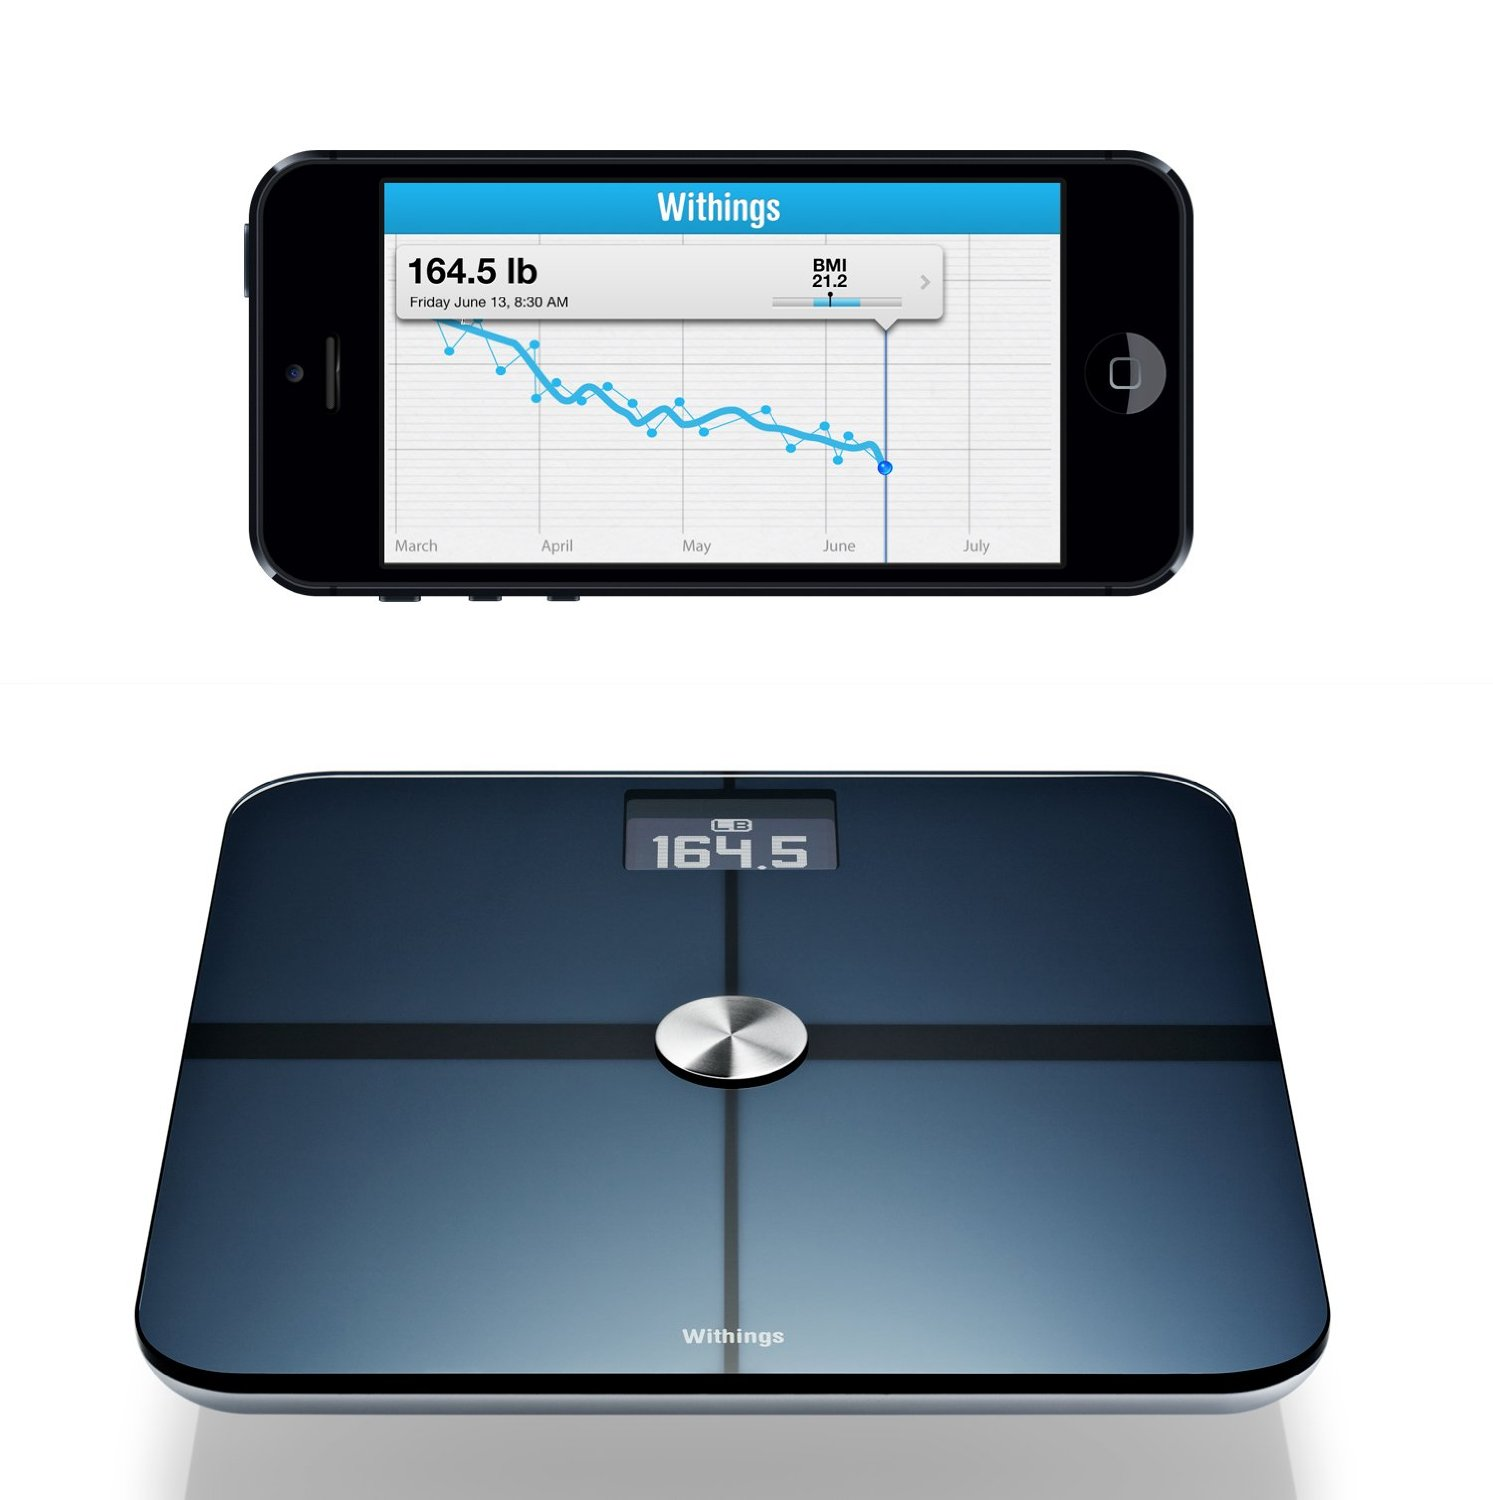 Withings Smart Body Analyzer and tracking app